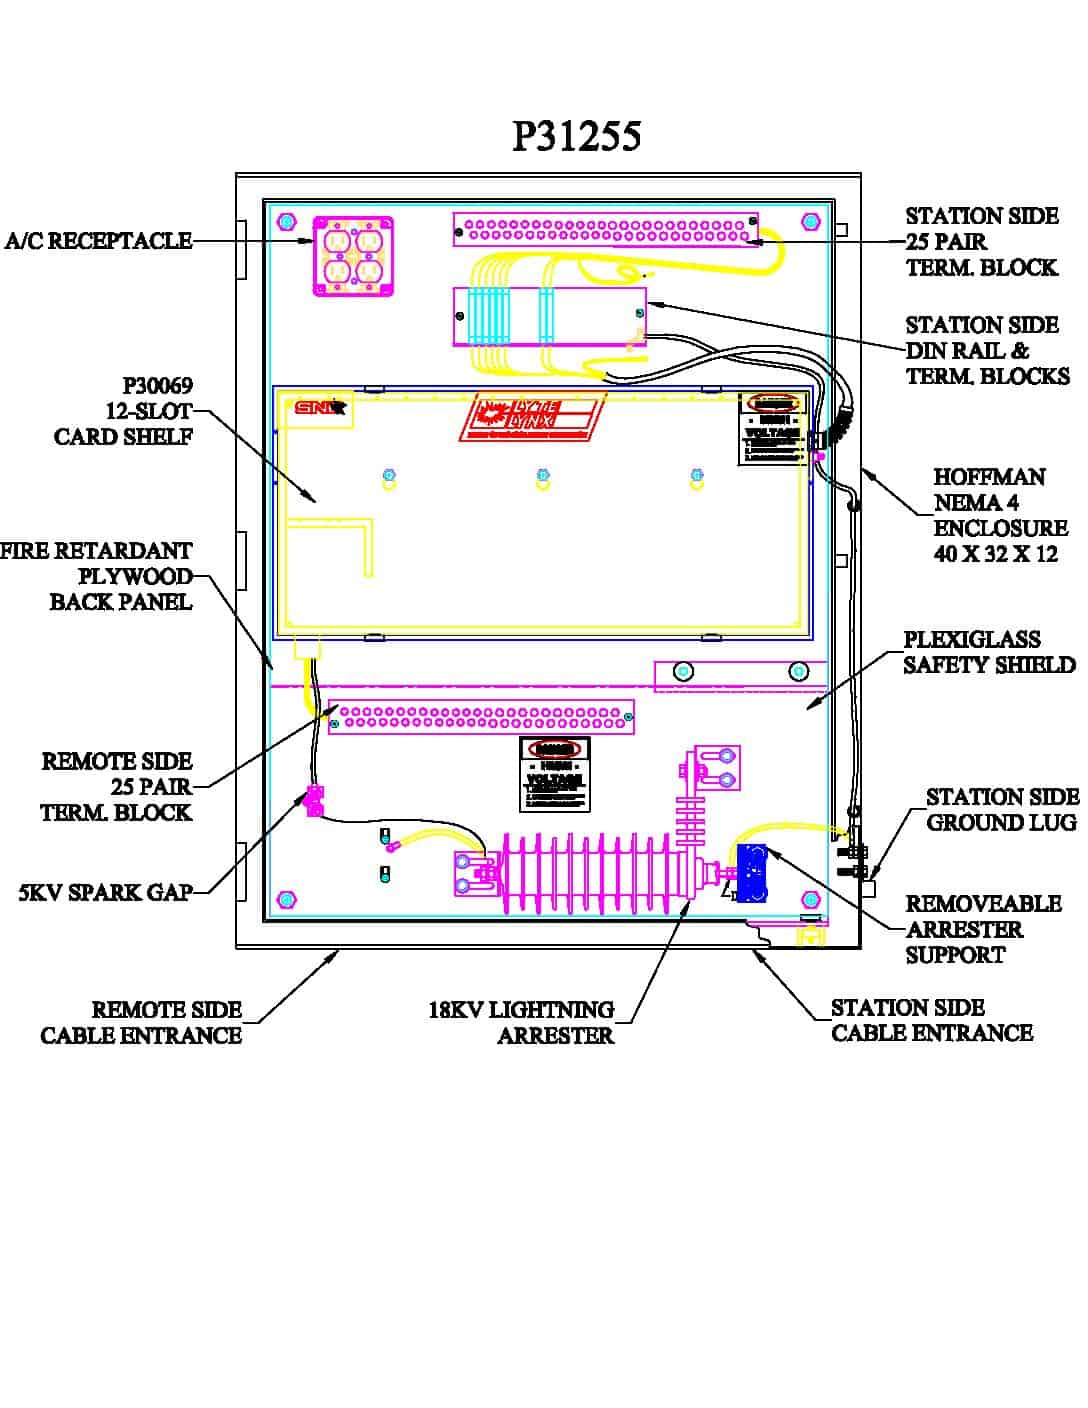 P31255 Turnkey Protection Packages - 12 slot PDF thumbnail